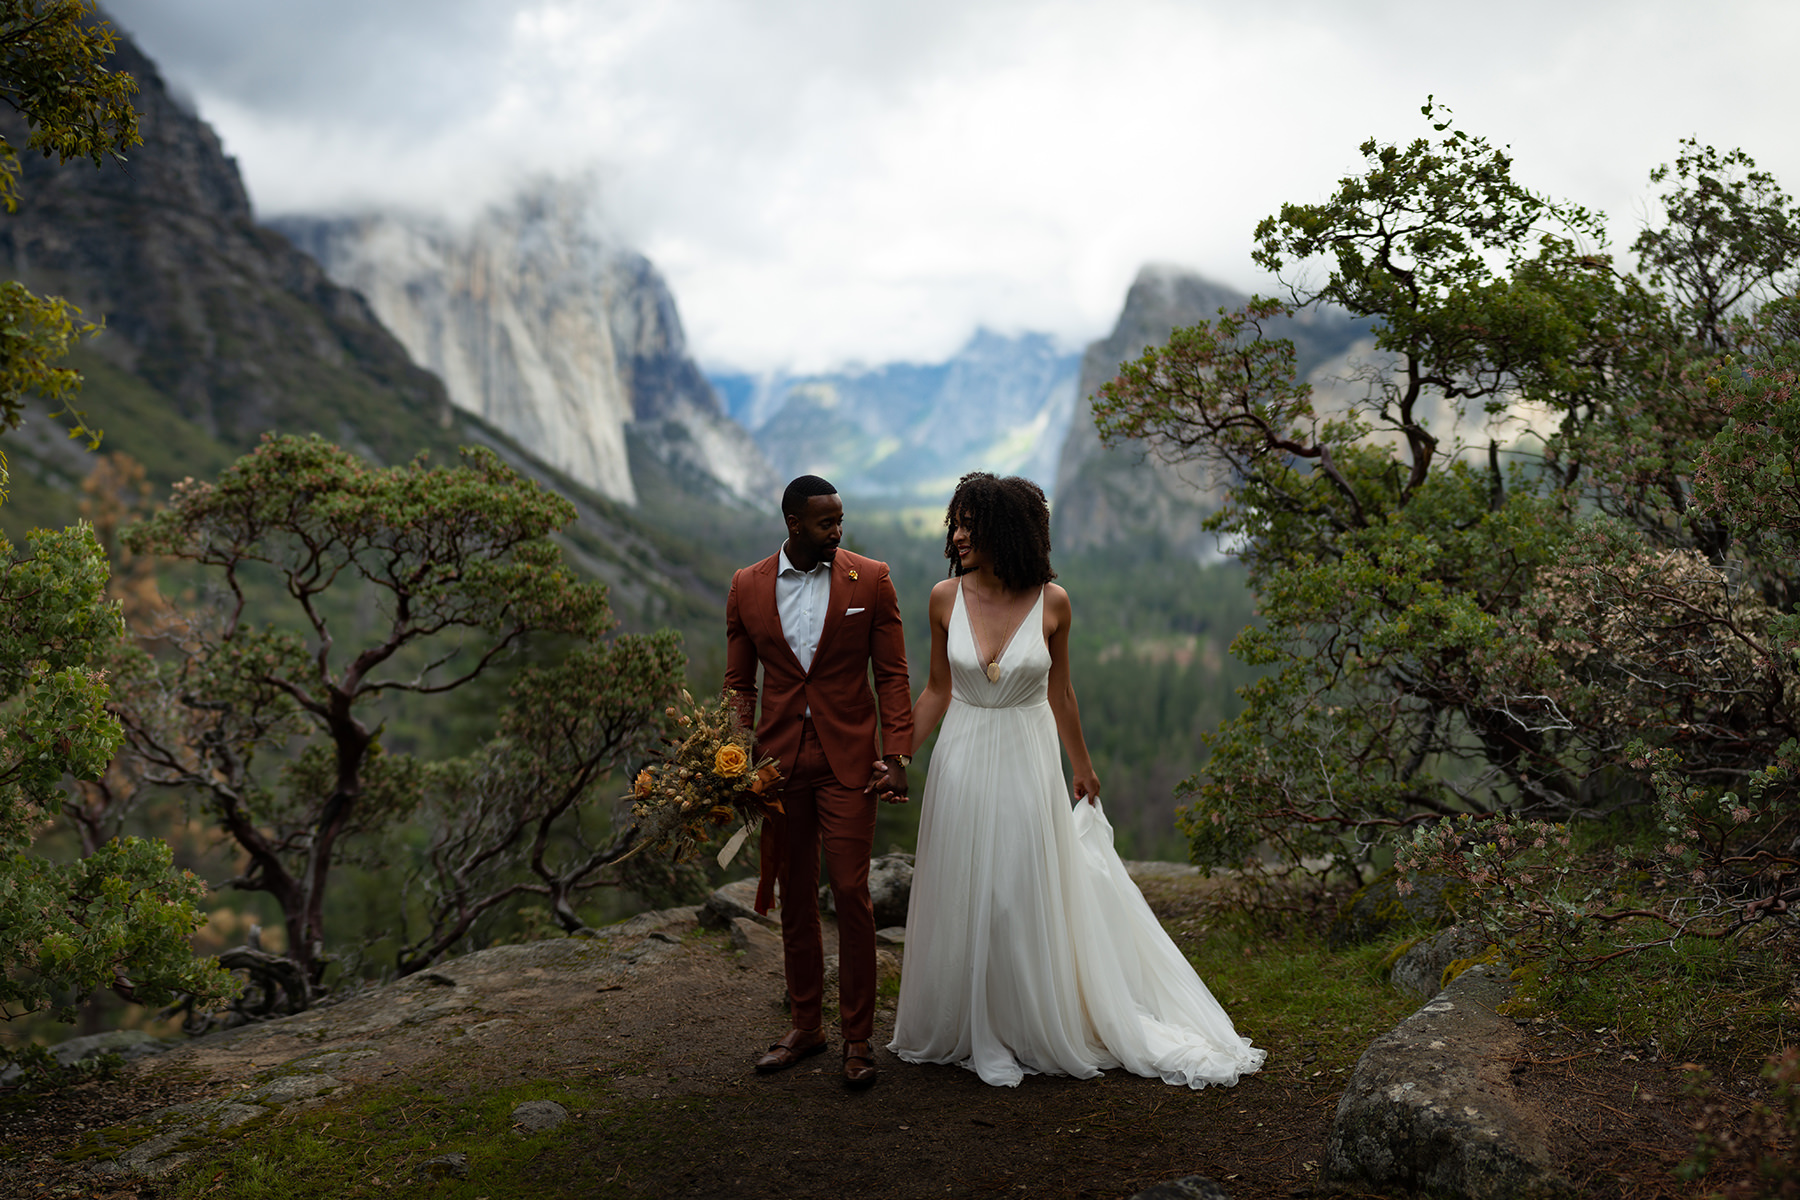 An unedited image of a wedding couple stands on a cliff in a National Park surrounded by trees and mountains.